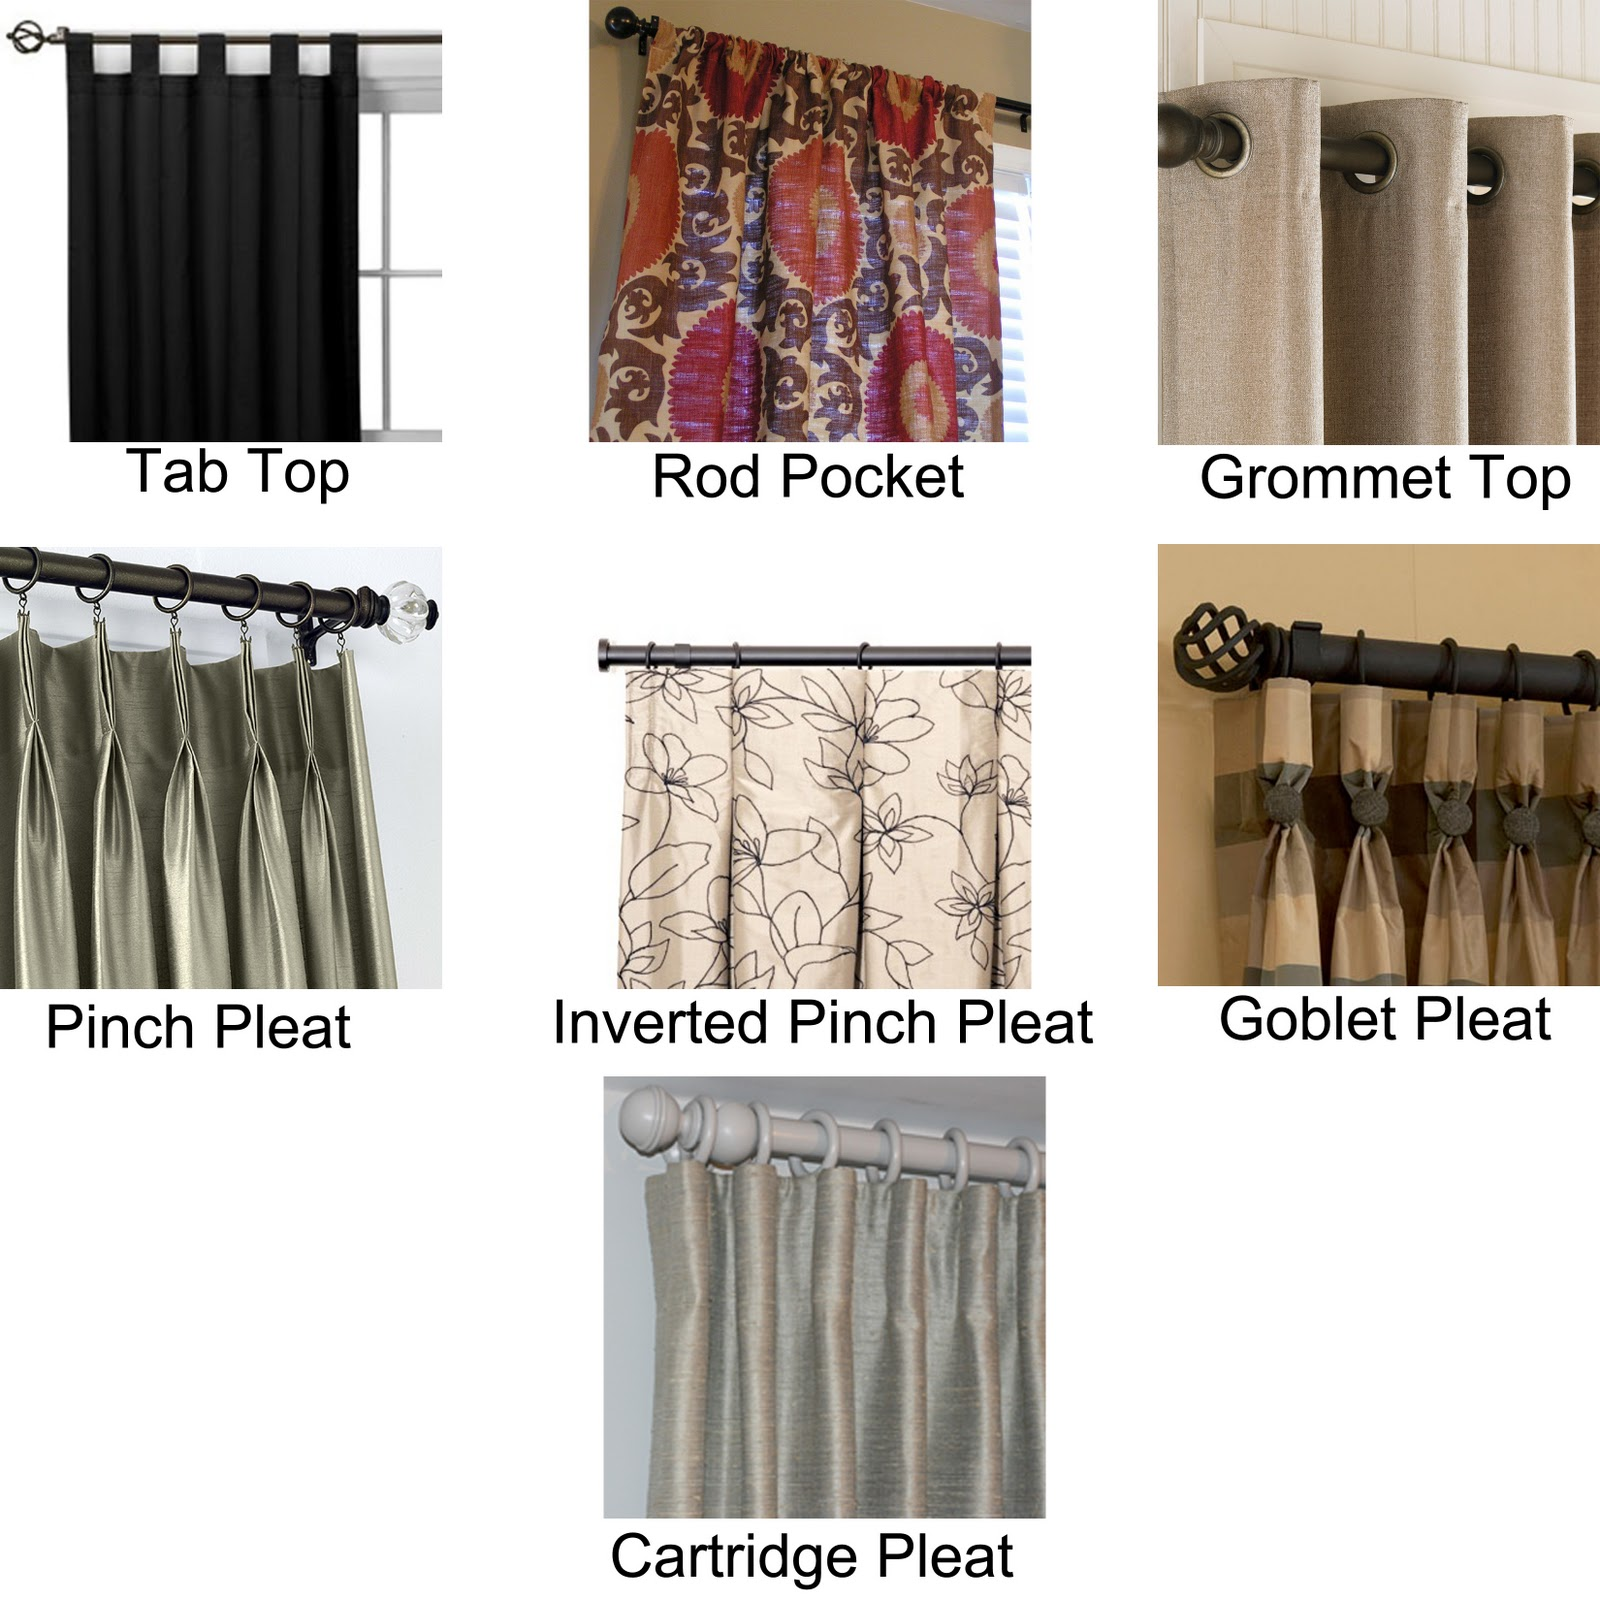 types of curtain rods Best Types of Curtain Rods | HomesFeed types of curtain rods